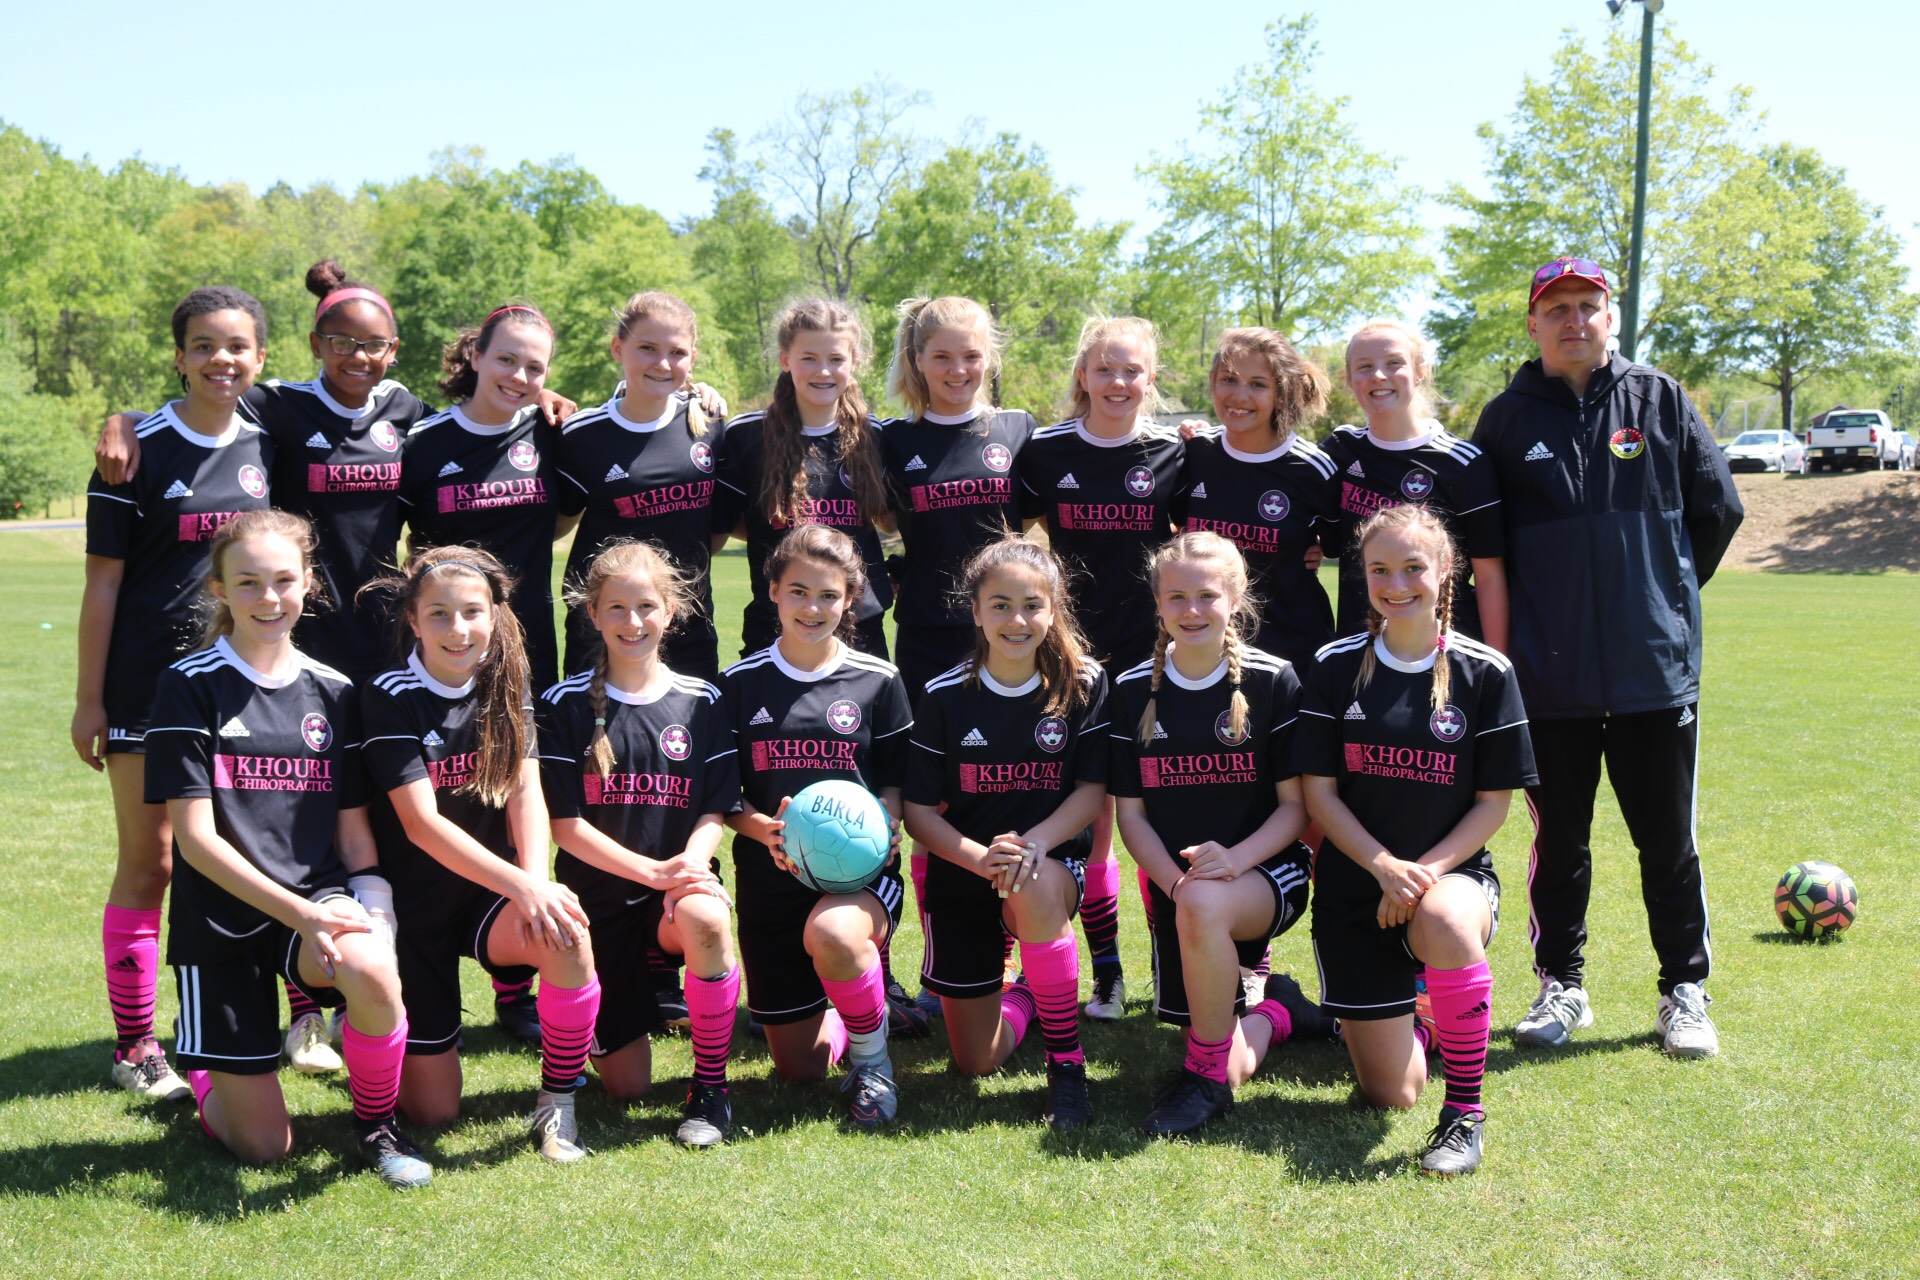 DISA U14 Gators, before their semi-final match at the S.C. Youth Soccer President's State Cup in Greenville. Top row: Gabby Hylton , Marley Walker, Cecilia Ollis, Jennifer Szlosek, Emma Darnell, Grace Herman, Claire Esse, Stephanie Kirk, Morgan Davis and Coach Andrew Kirk. Bottom Row: Meredith McDonald, Bianca Olivetti, Carly Becvinovski, Makayla Brunetti, Avery Darr, Emily Scarth and Morgan Ramsey.